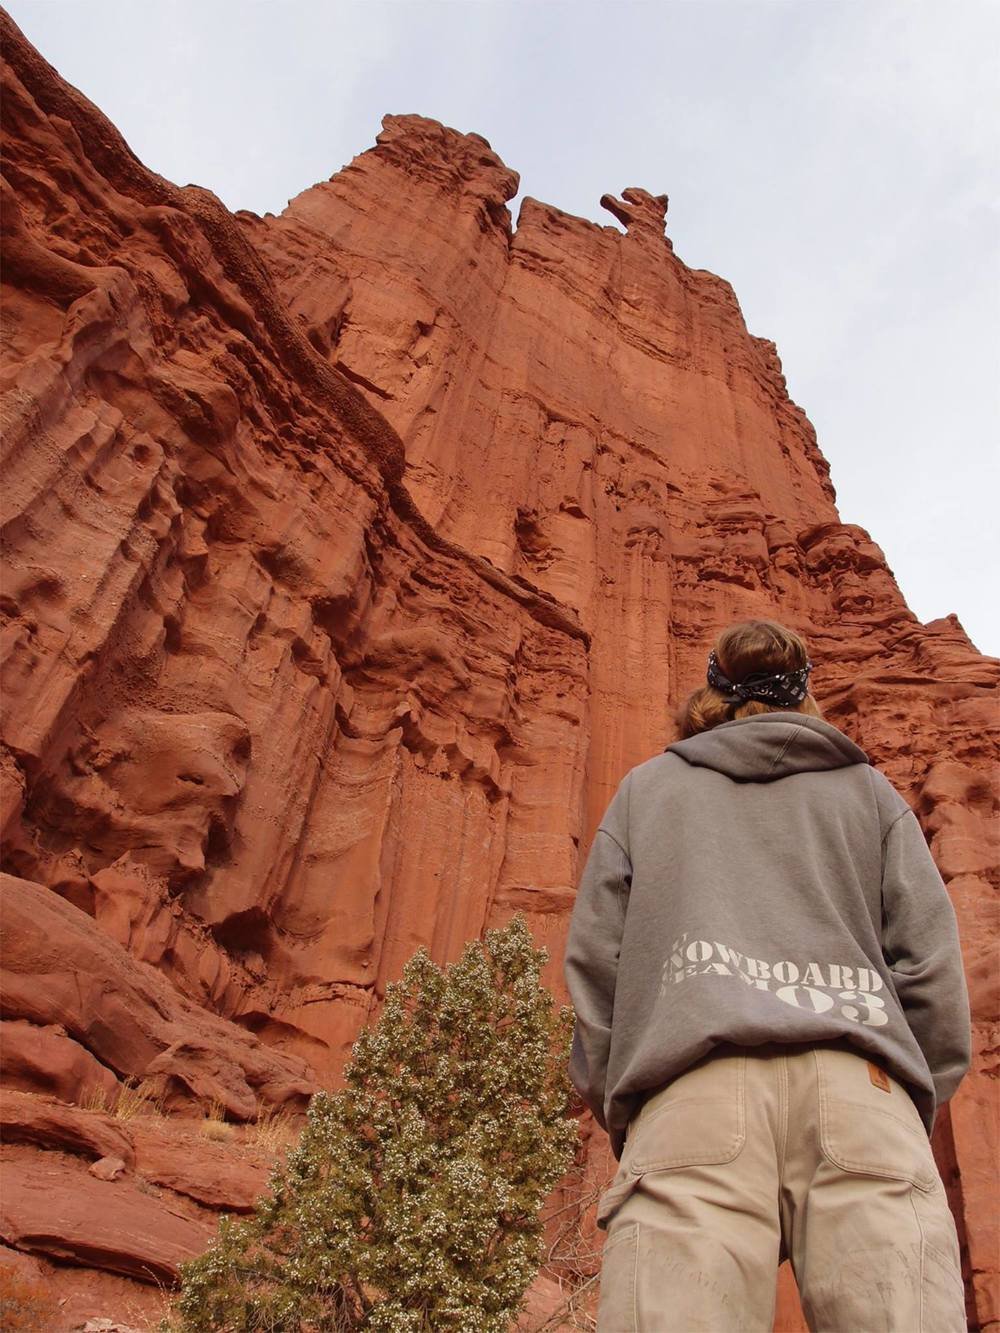 Gazing up at the corkscrew summit of Ancient Art in the Fisher Towers. Ancient Art is one of the smaller pinnacles in the Fishers, approximately a third of the height of the major summits. Photo by Mandi Prout